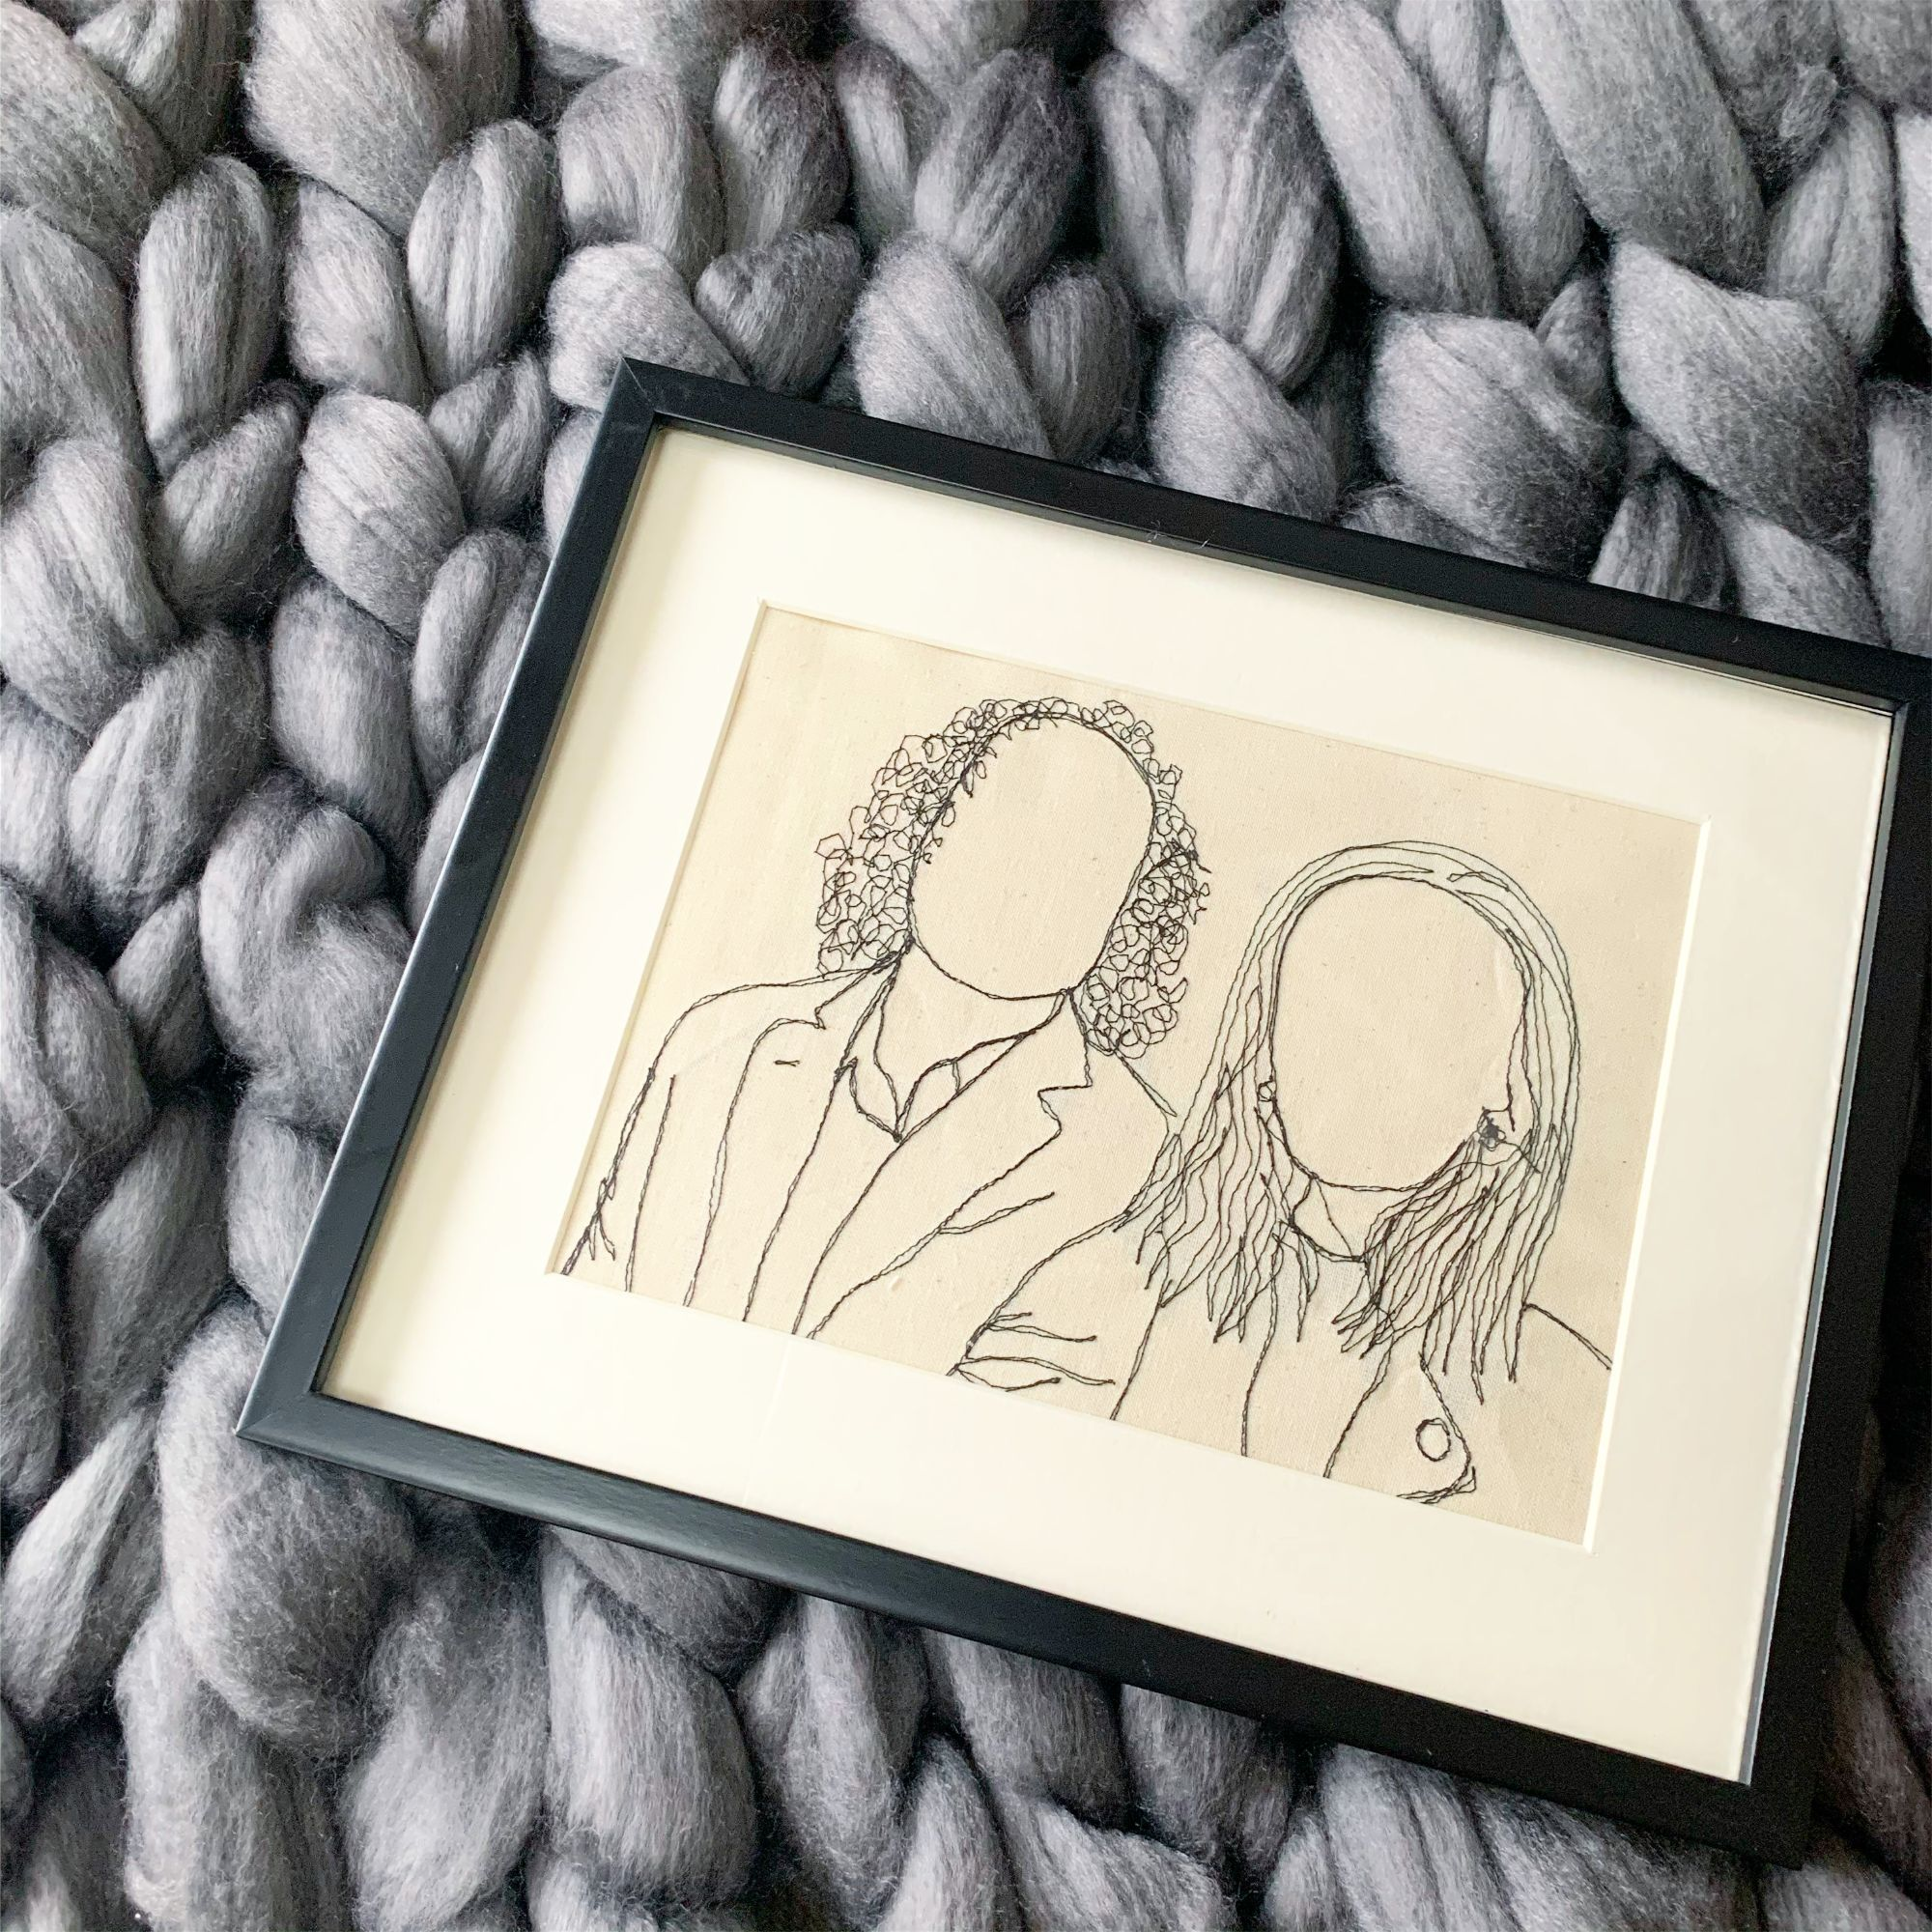 A machine stitched portrait of two people, framed and sitting on a chunky knitted backdrop